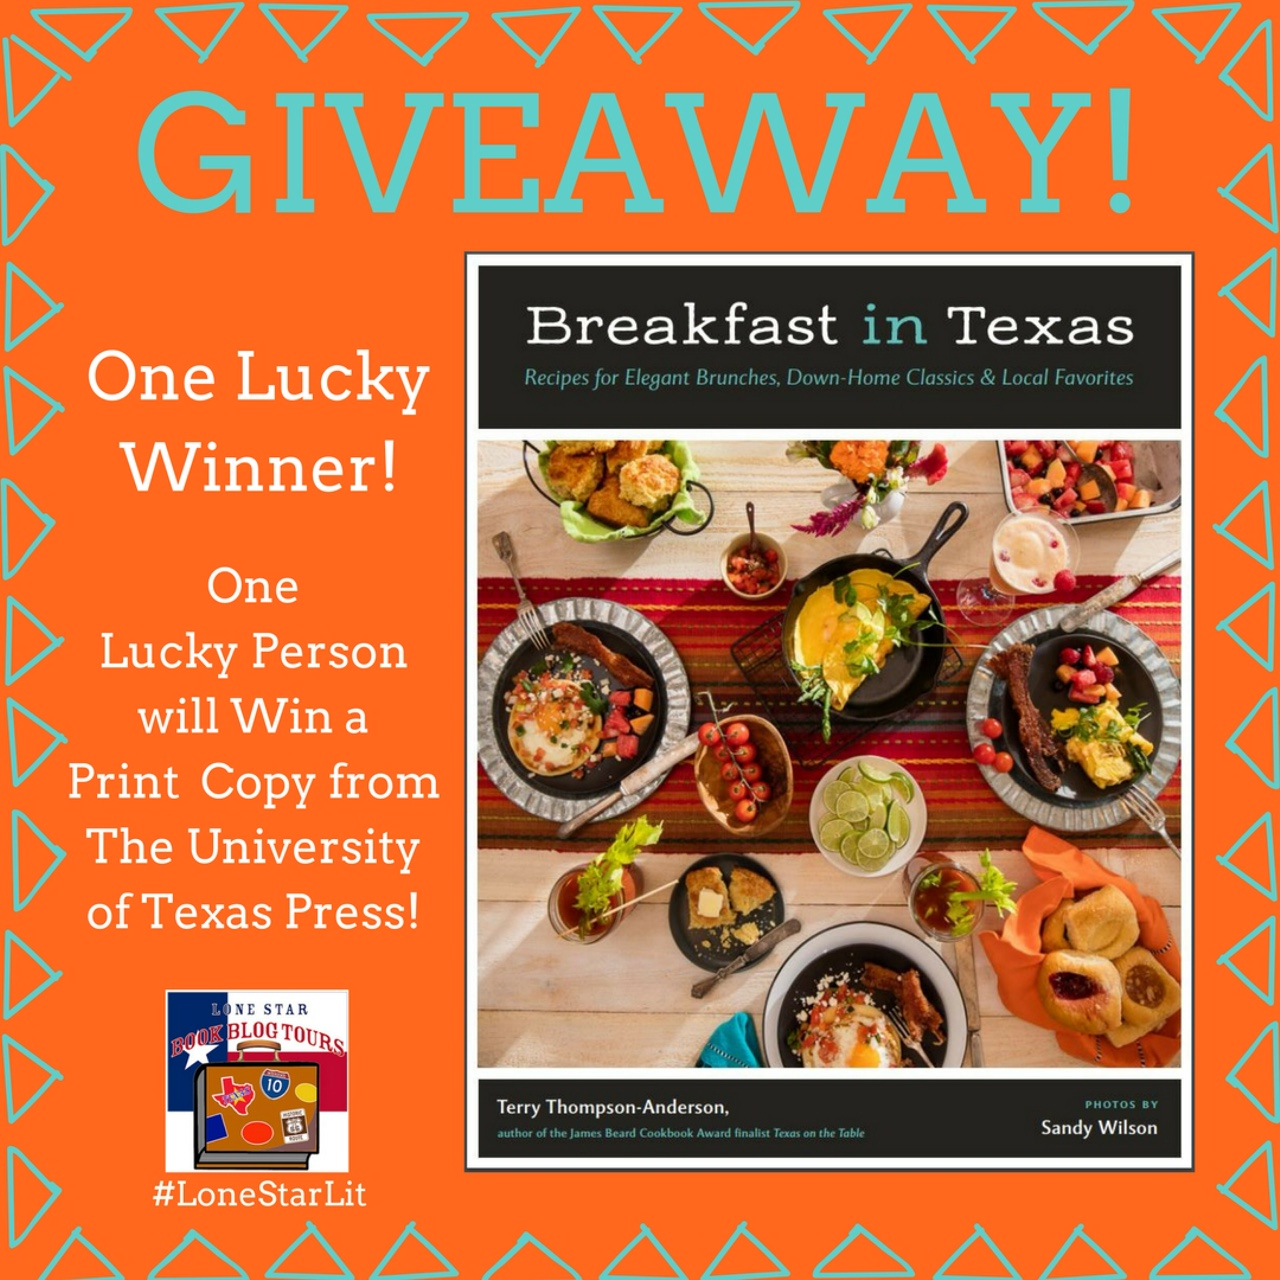 Breakfast in Texas Giveaway